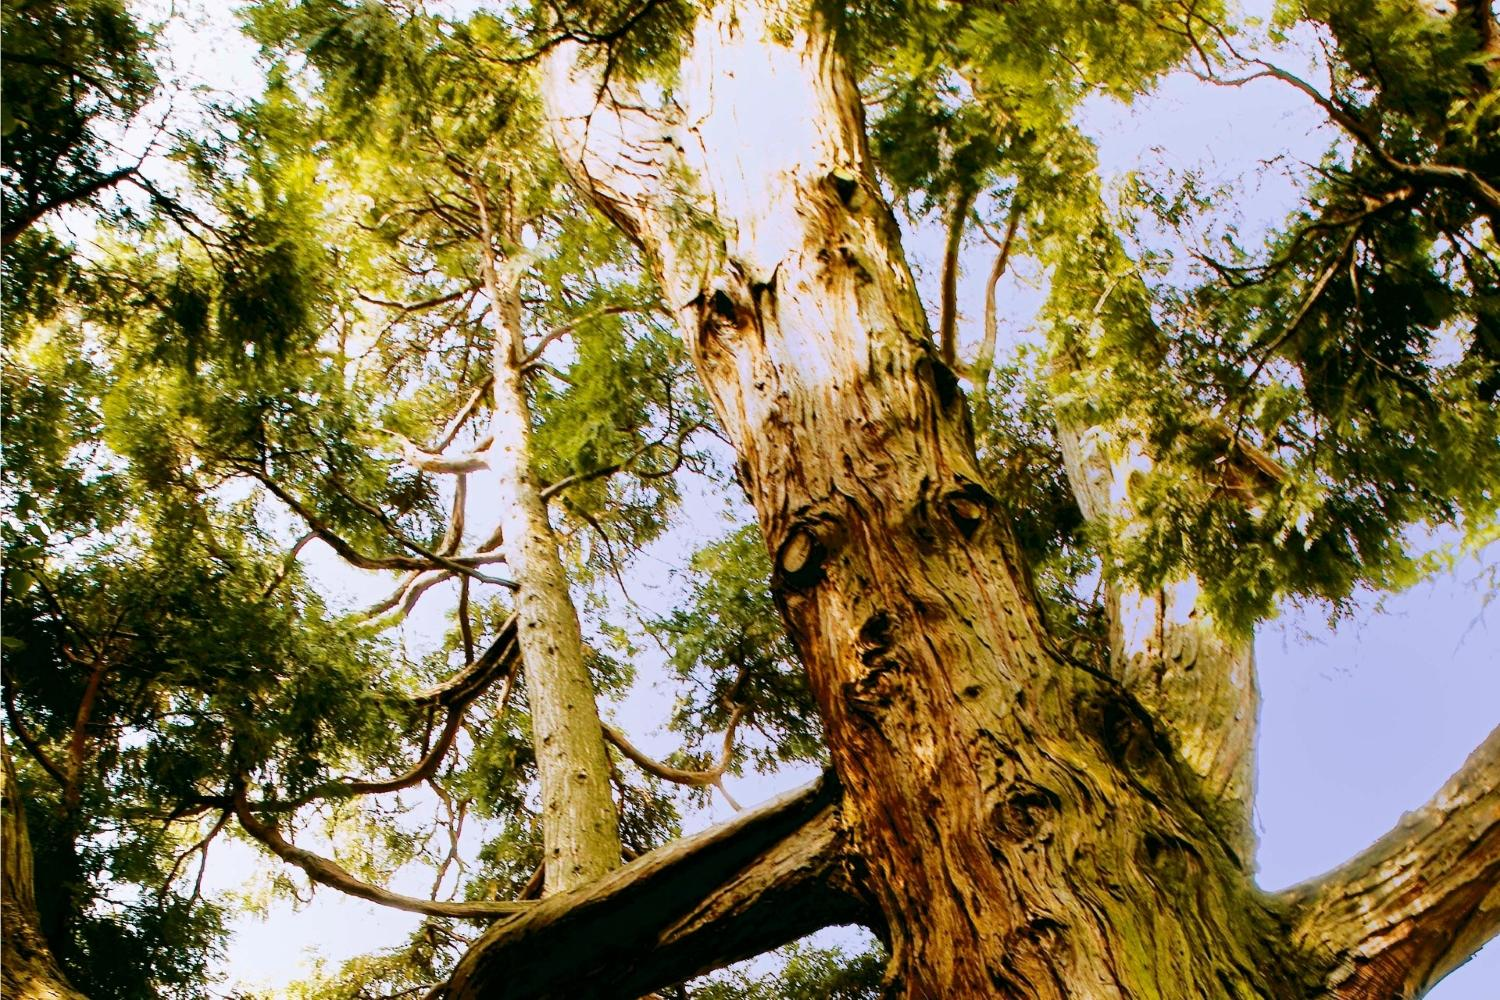 Cedarwood, a common ingredient found in many woody fragrances.